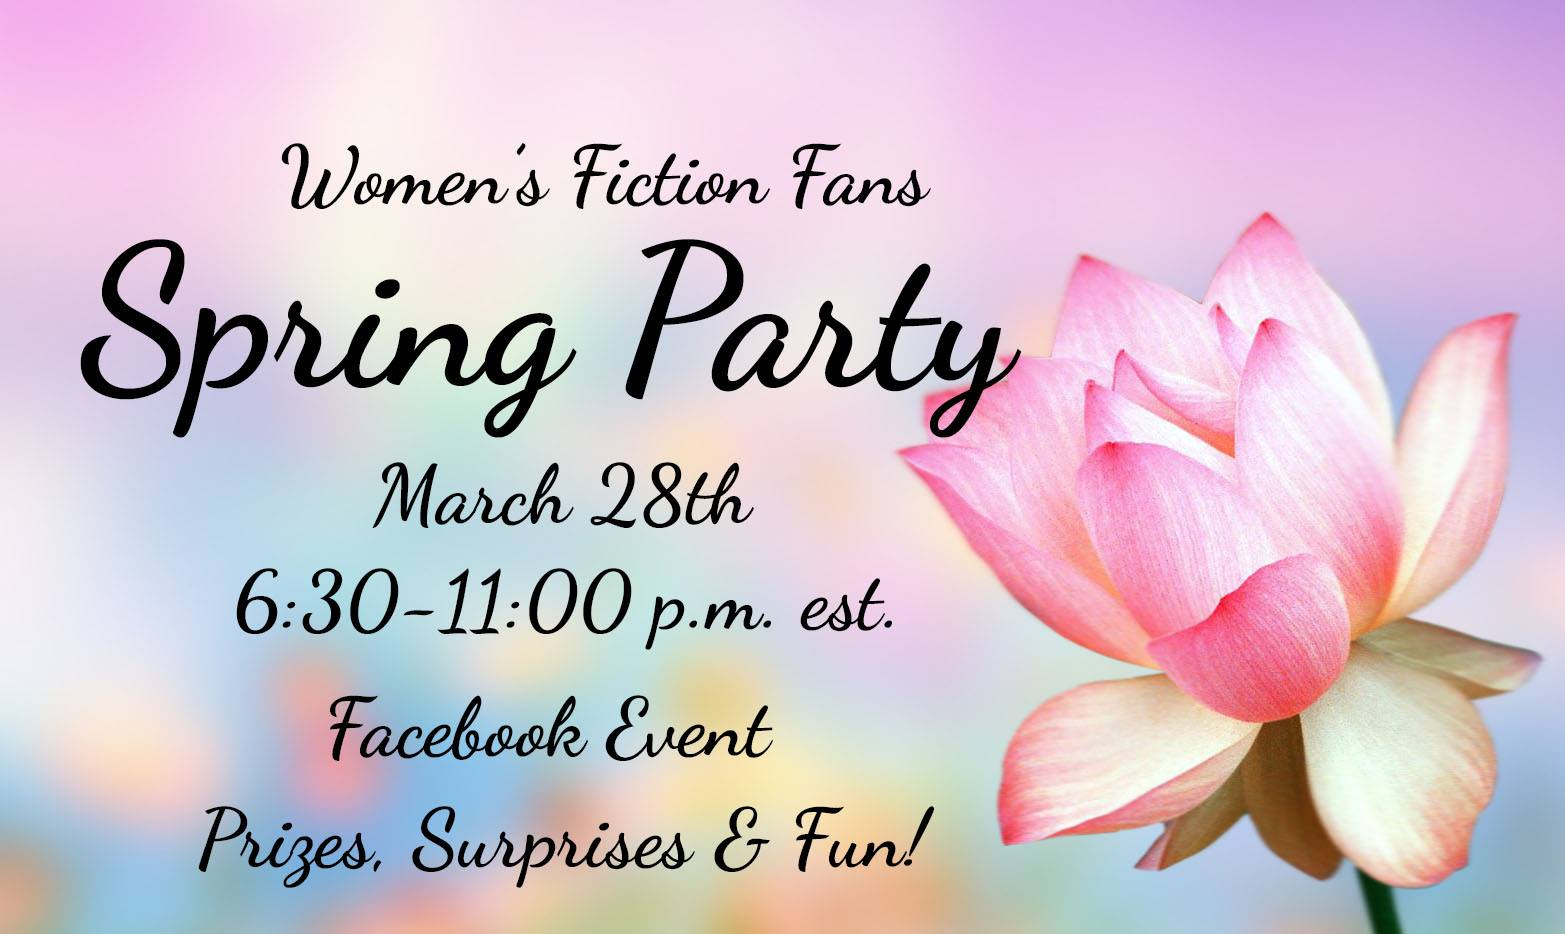 Spring Facebook Party coming March 28th